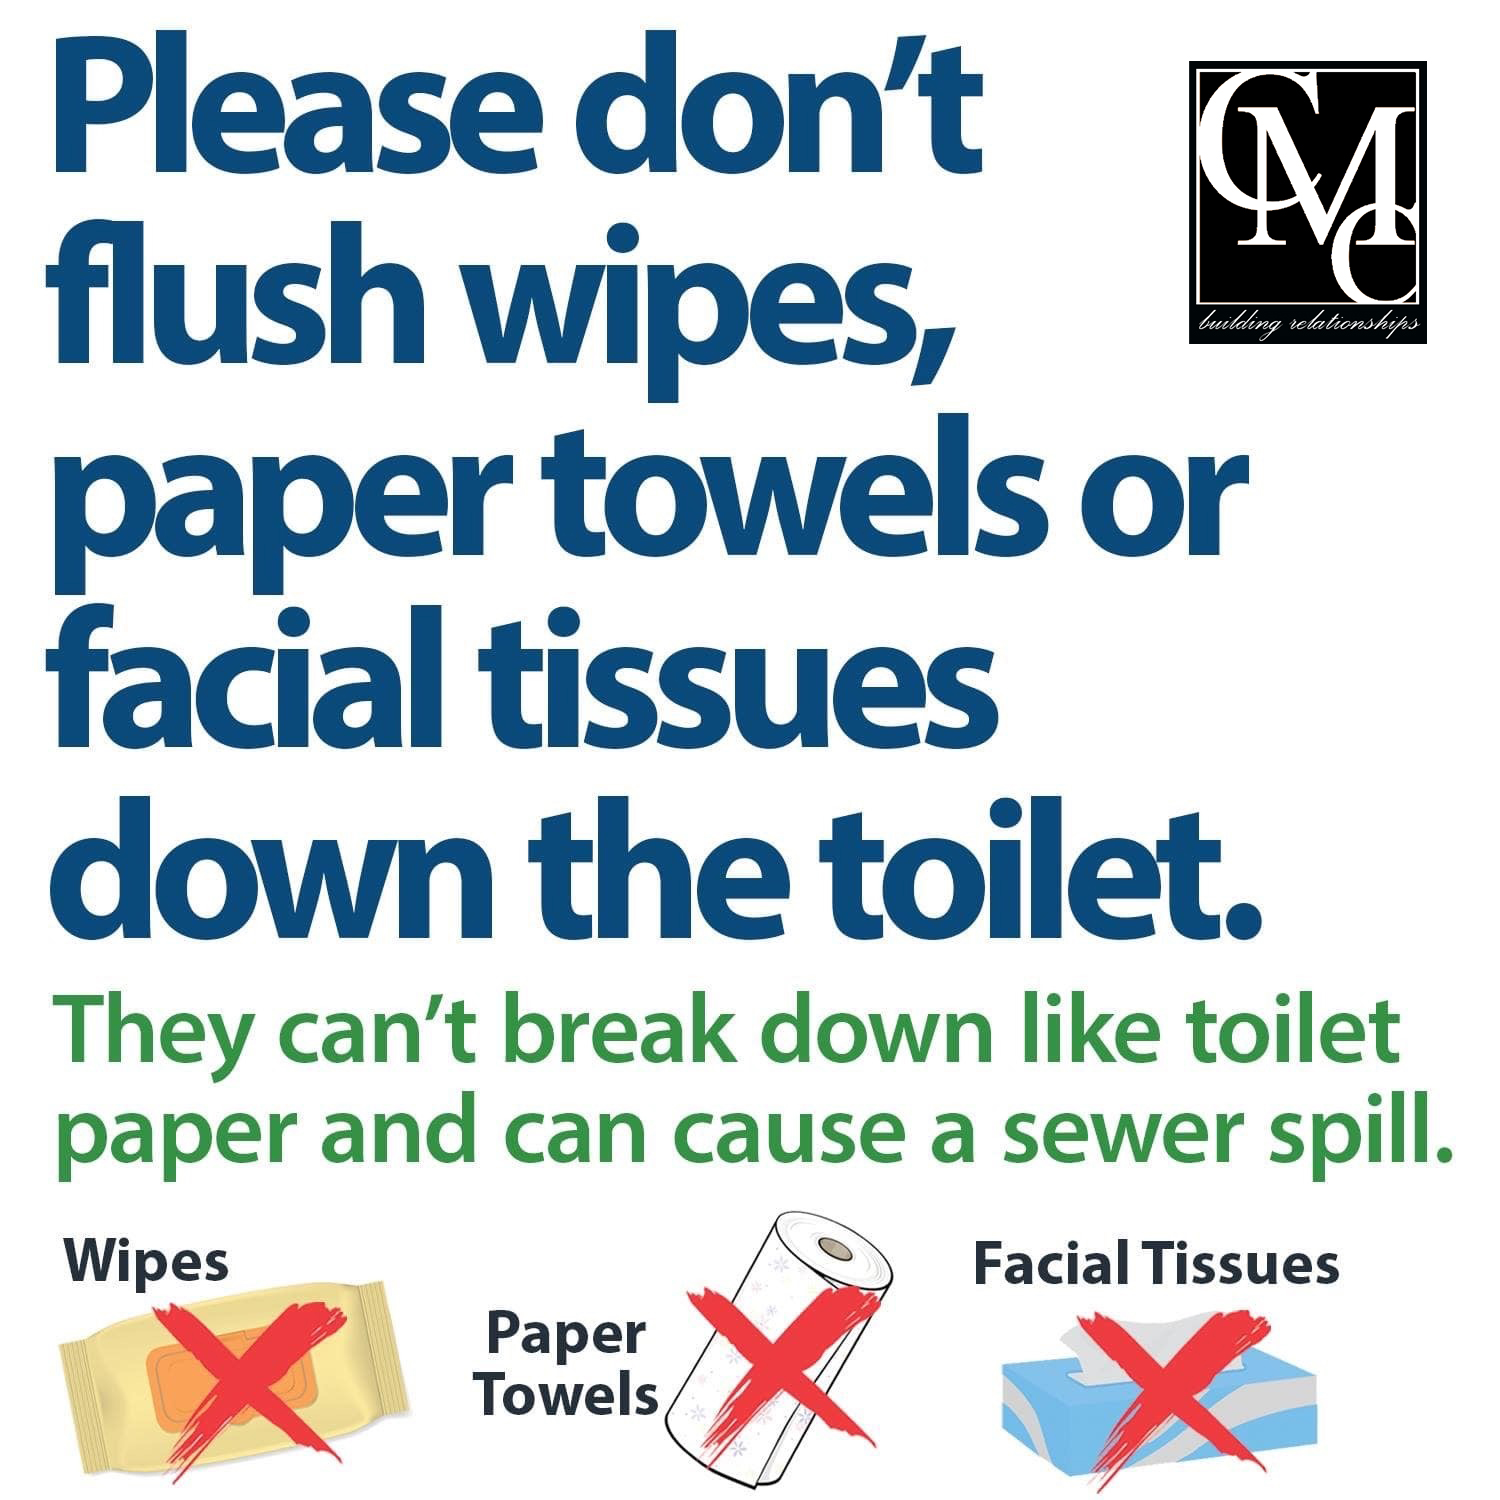 Please do not flush wipes, paper towels, or facial tissues